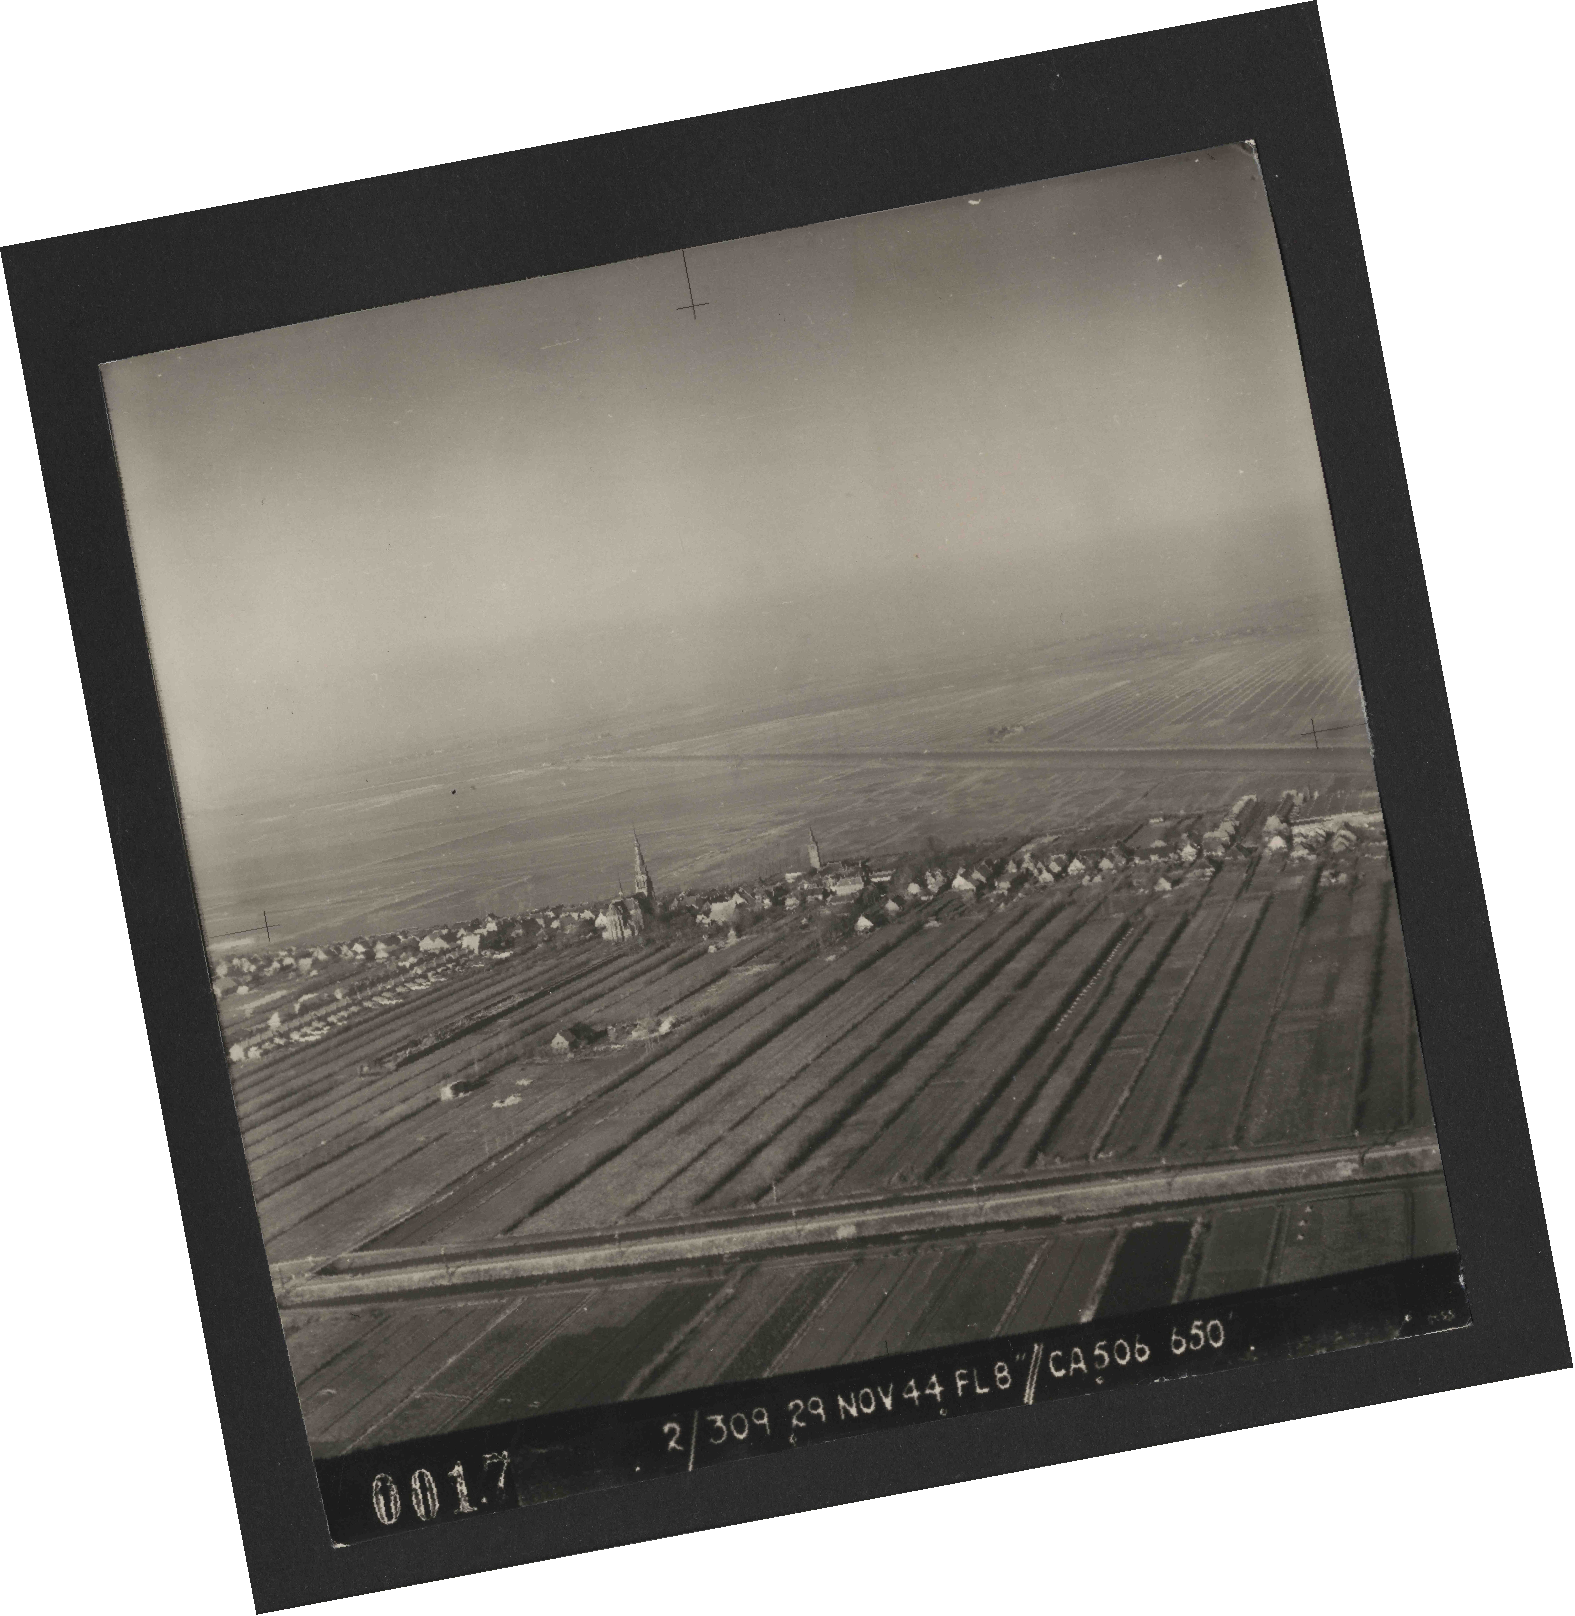 Collection RAF aerial photos 1940-1945 - flight 533, run 01, photo 0017